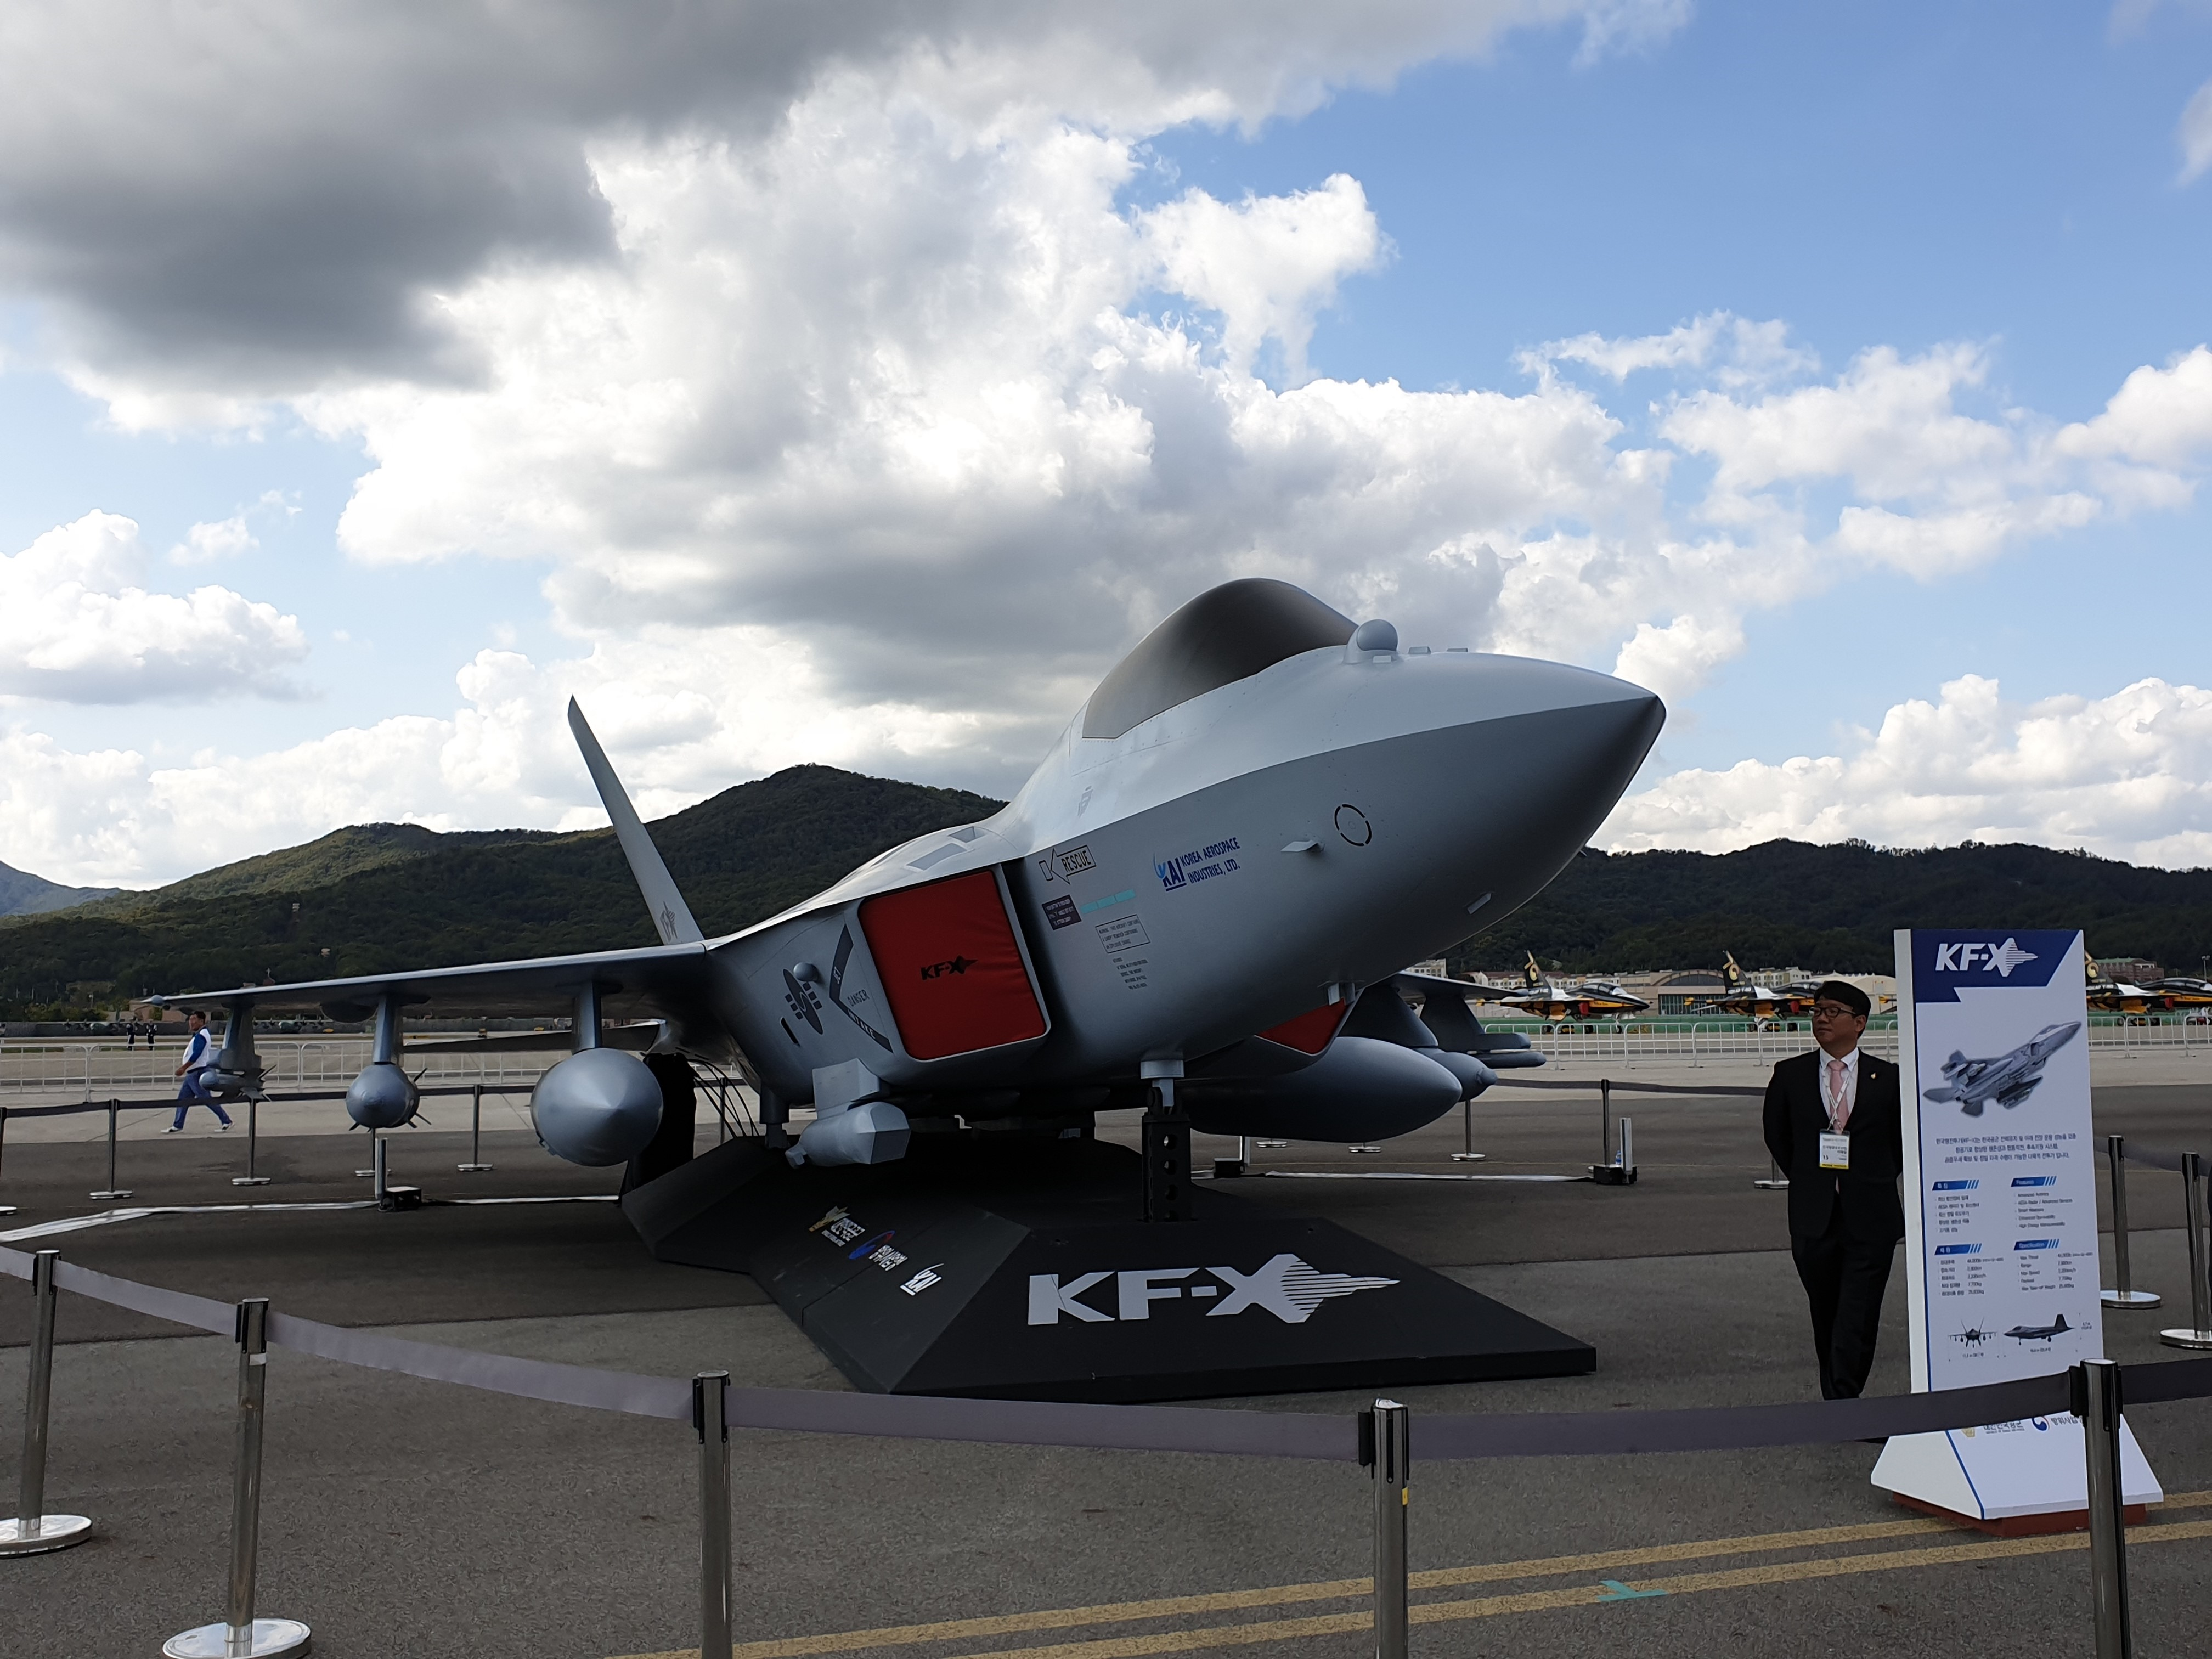 Korea Aerospace Industries unveiled the full-sized mock-up for the first time at the Seoul Aerospace and Defense Exhibition, or ADEX.